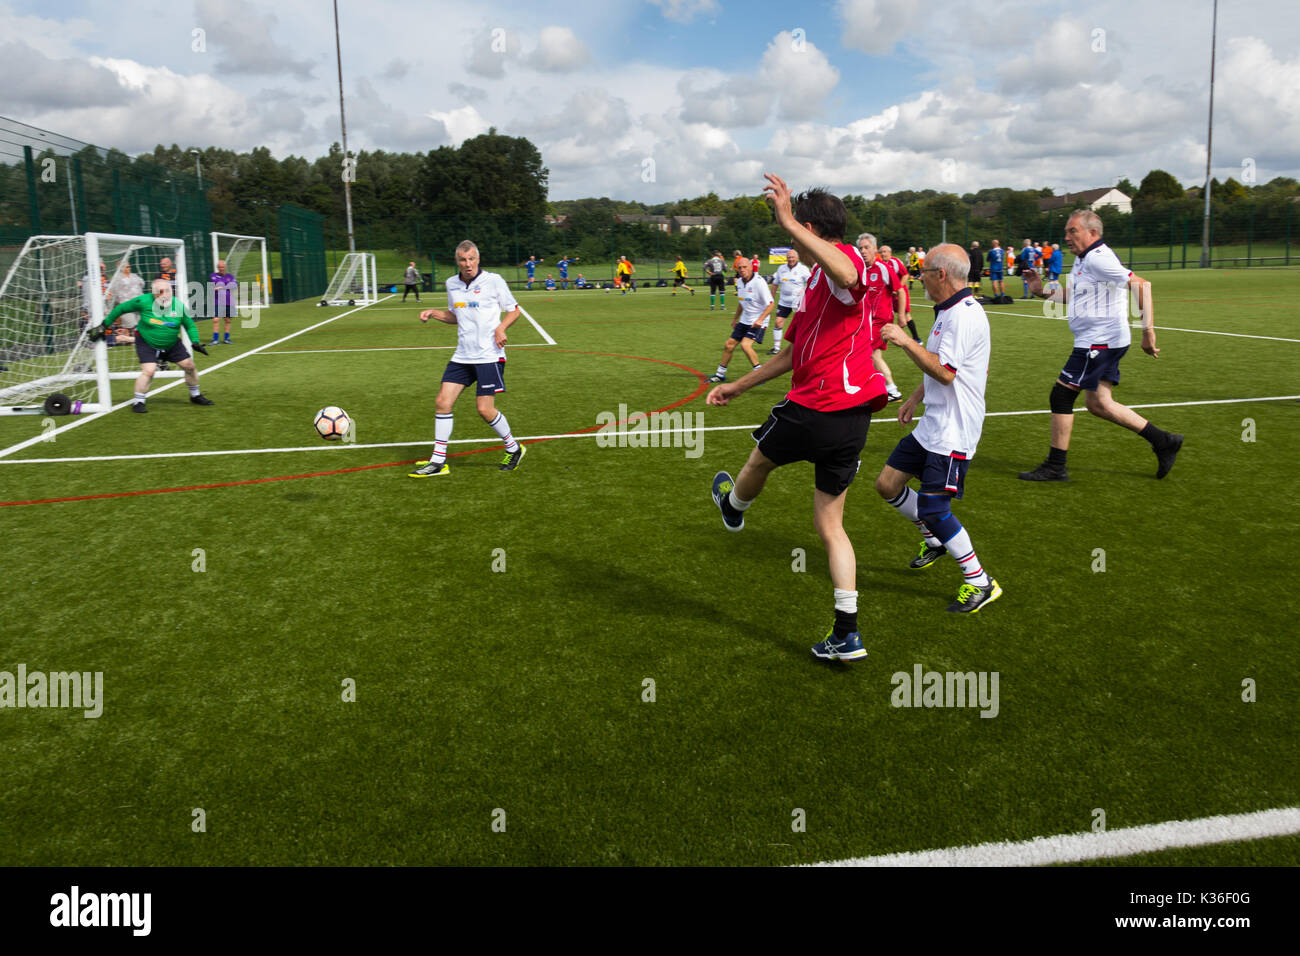 Heywood, Greater Manchester, UK. 1st Sep, 2017. Today saw the kick-off of the second season for the Greater Manchester Over 60s Walking Football league at Heywood Sports Village. Bury Relics in red beat Bolton Wanderers B 2-1 in their opening game. Walking Football is one of the fastest growing areas of organised football in the UK, aimed at increasing health and fitness through physical activity in the over 50s, encouraged by football clubs, health professionals and the Football Association. Credit: Joseph Clemson/Alamy Live News - Stock Image